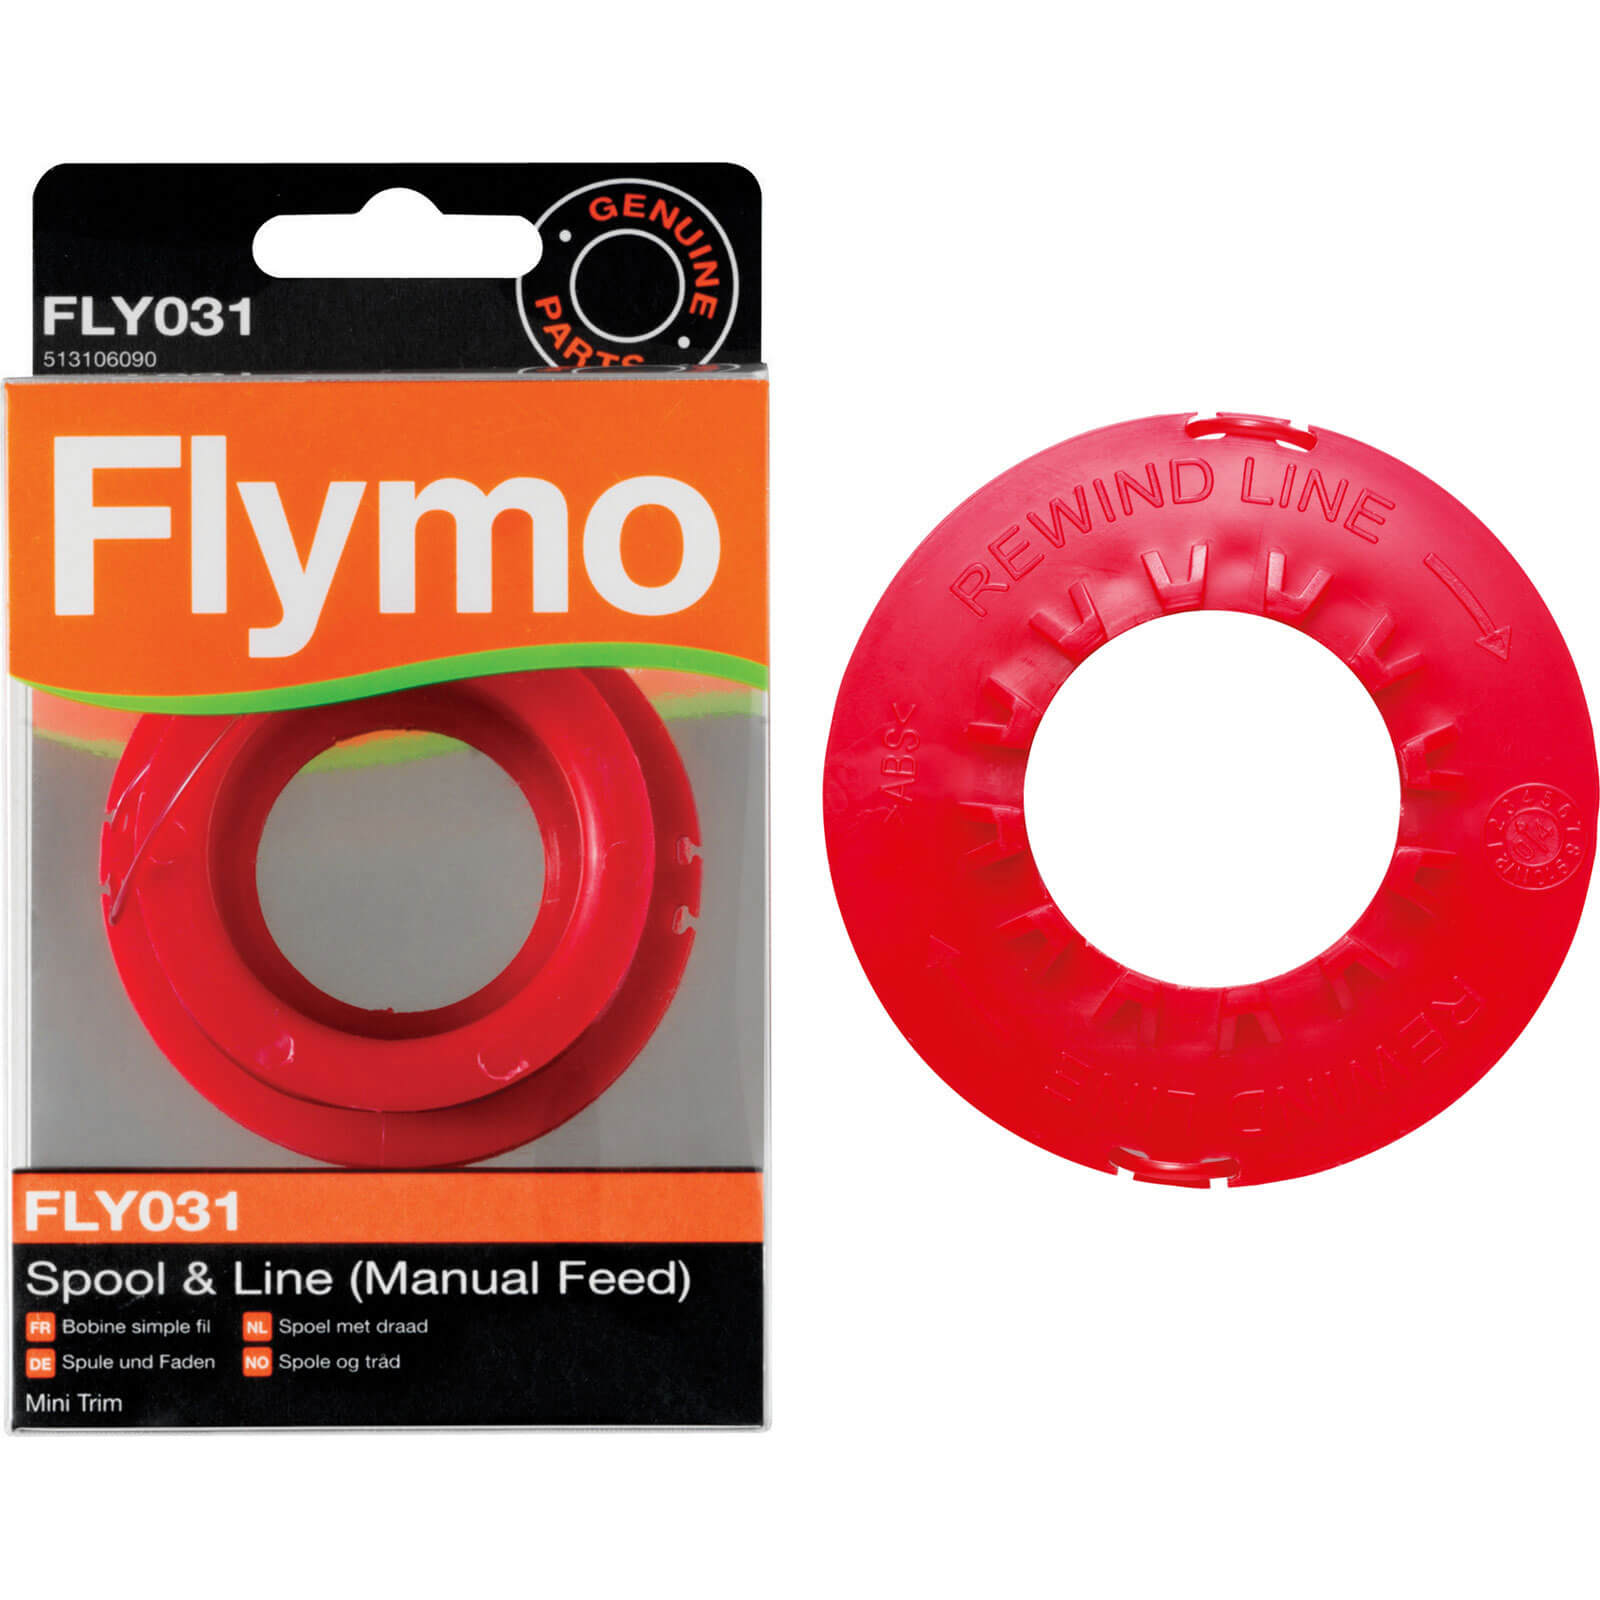 Flymo FLY031 Replacement Spool & Line for Mini Trim Grass Trimmers